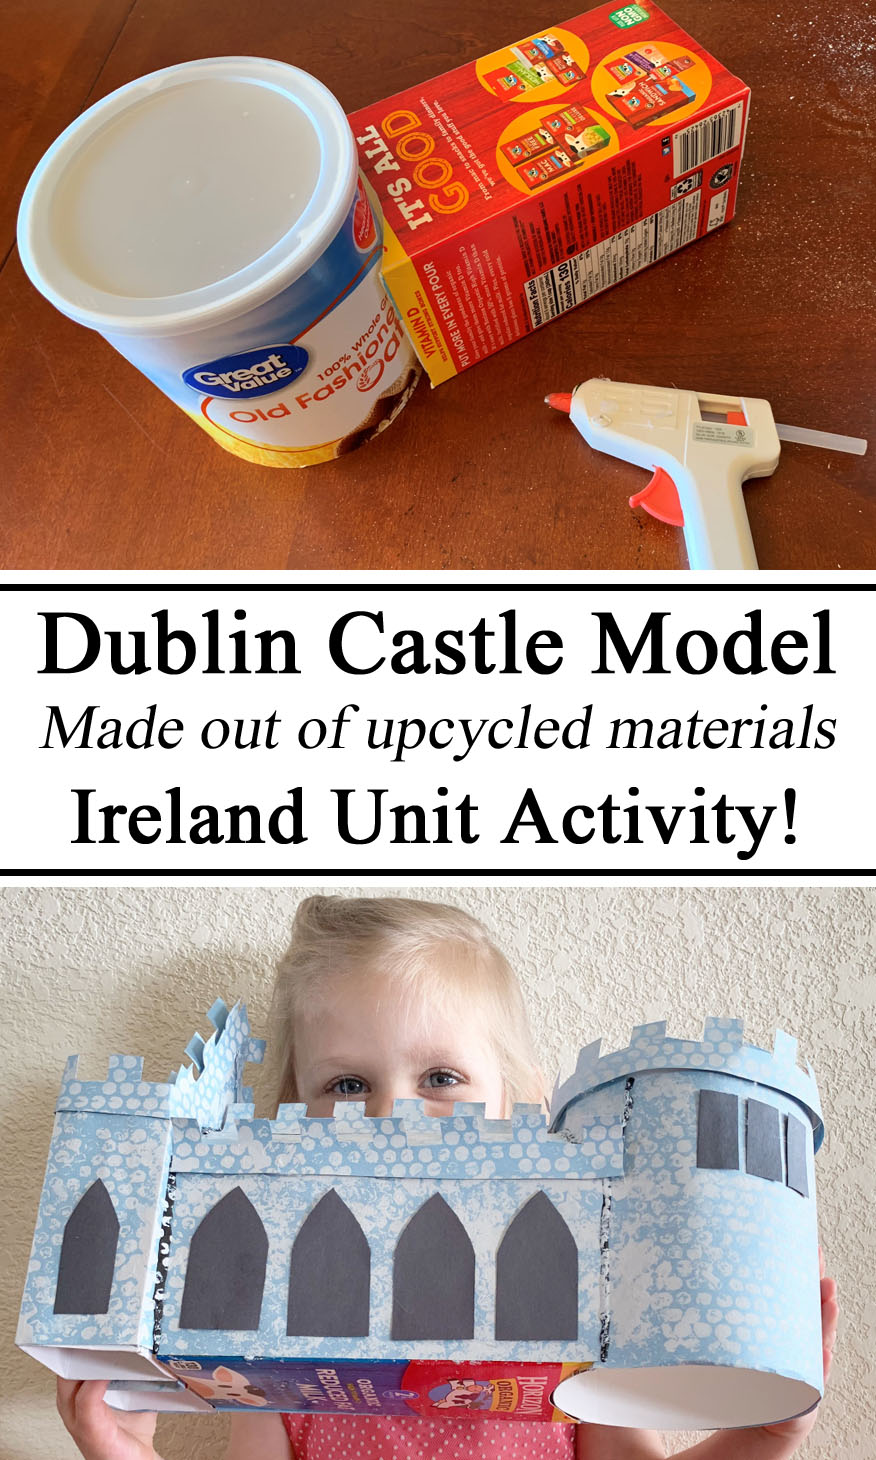 Homeschool, Model, Ireland Unit, Dublin Castle, Paper Crafts, Upcycle, Upcycling, Diorama, Miniature, Montessori, Waldorf, Arts and Crafts for Kids, #travelingthroughlearning, educational, STEAM Education, STEM Education, Hands on Learning, Inspiration, Preschool, Kindergarten, PreK, Ideas for Teachers, Early Years, Unschooling